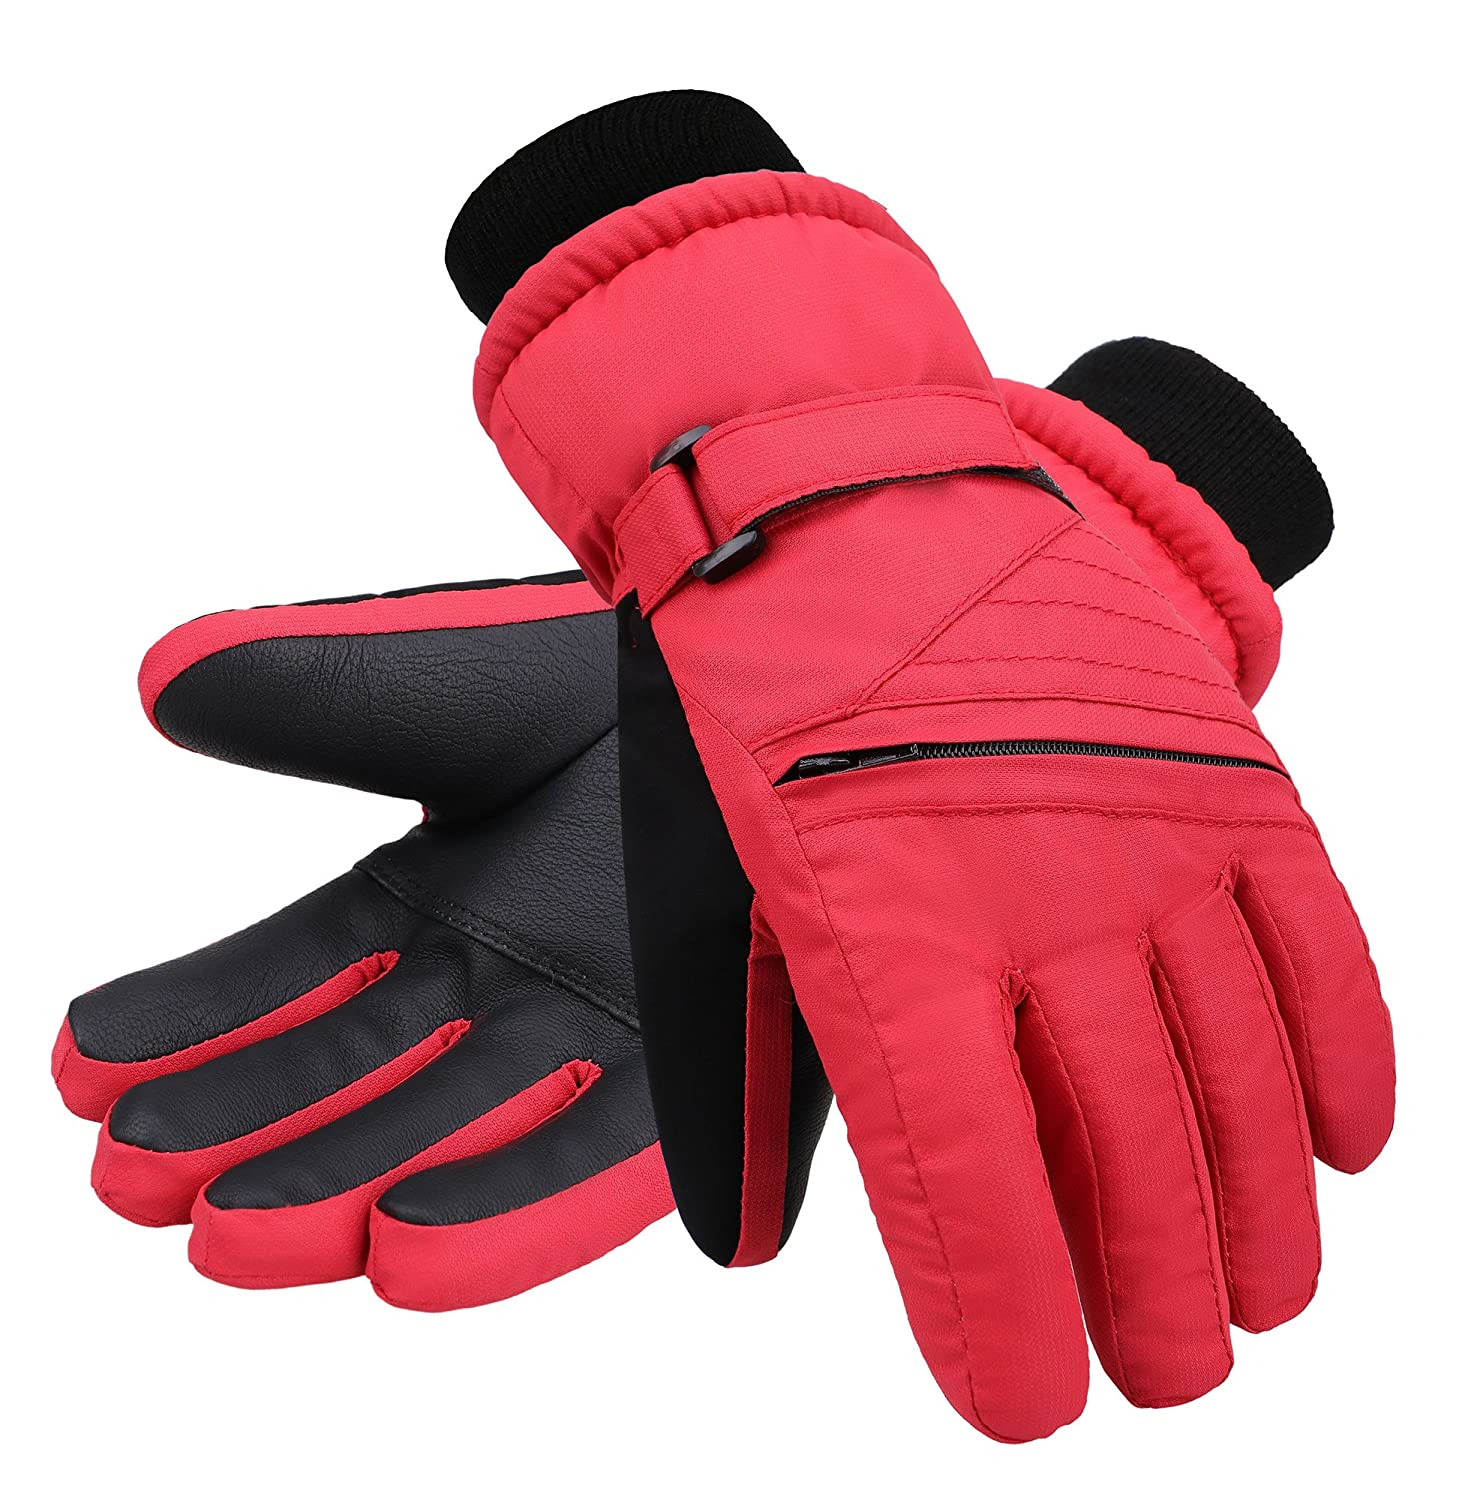 Andorra Kids' Zippered Pocket Ski & Snowboarding Gloves